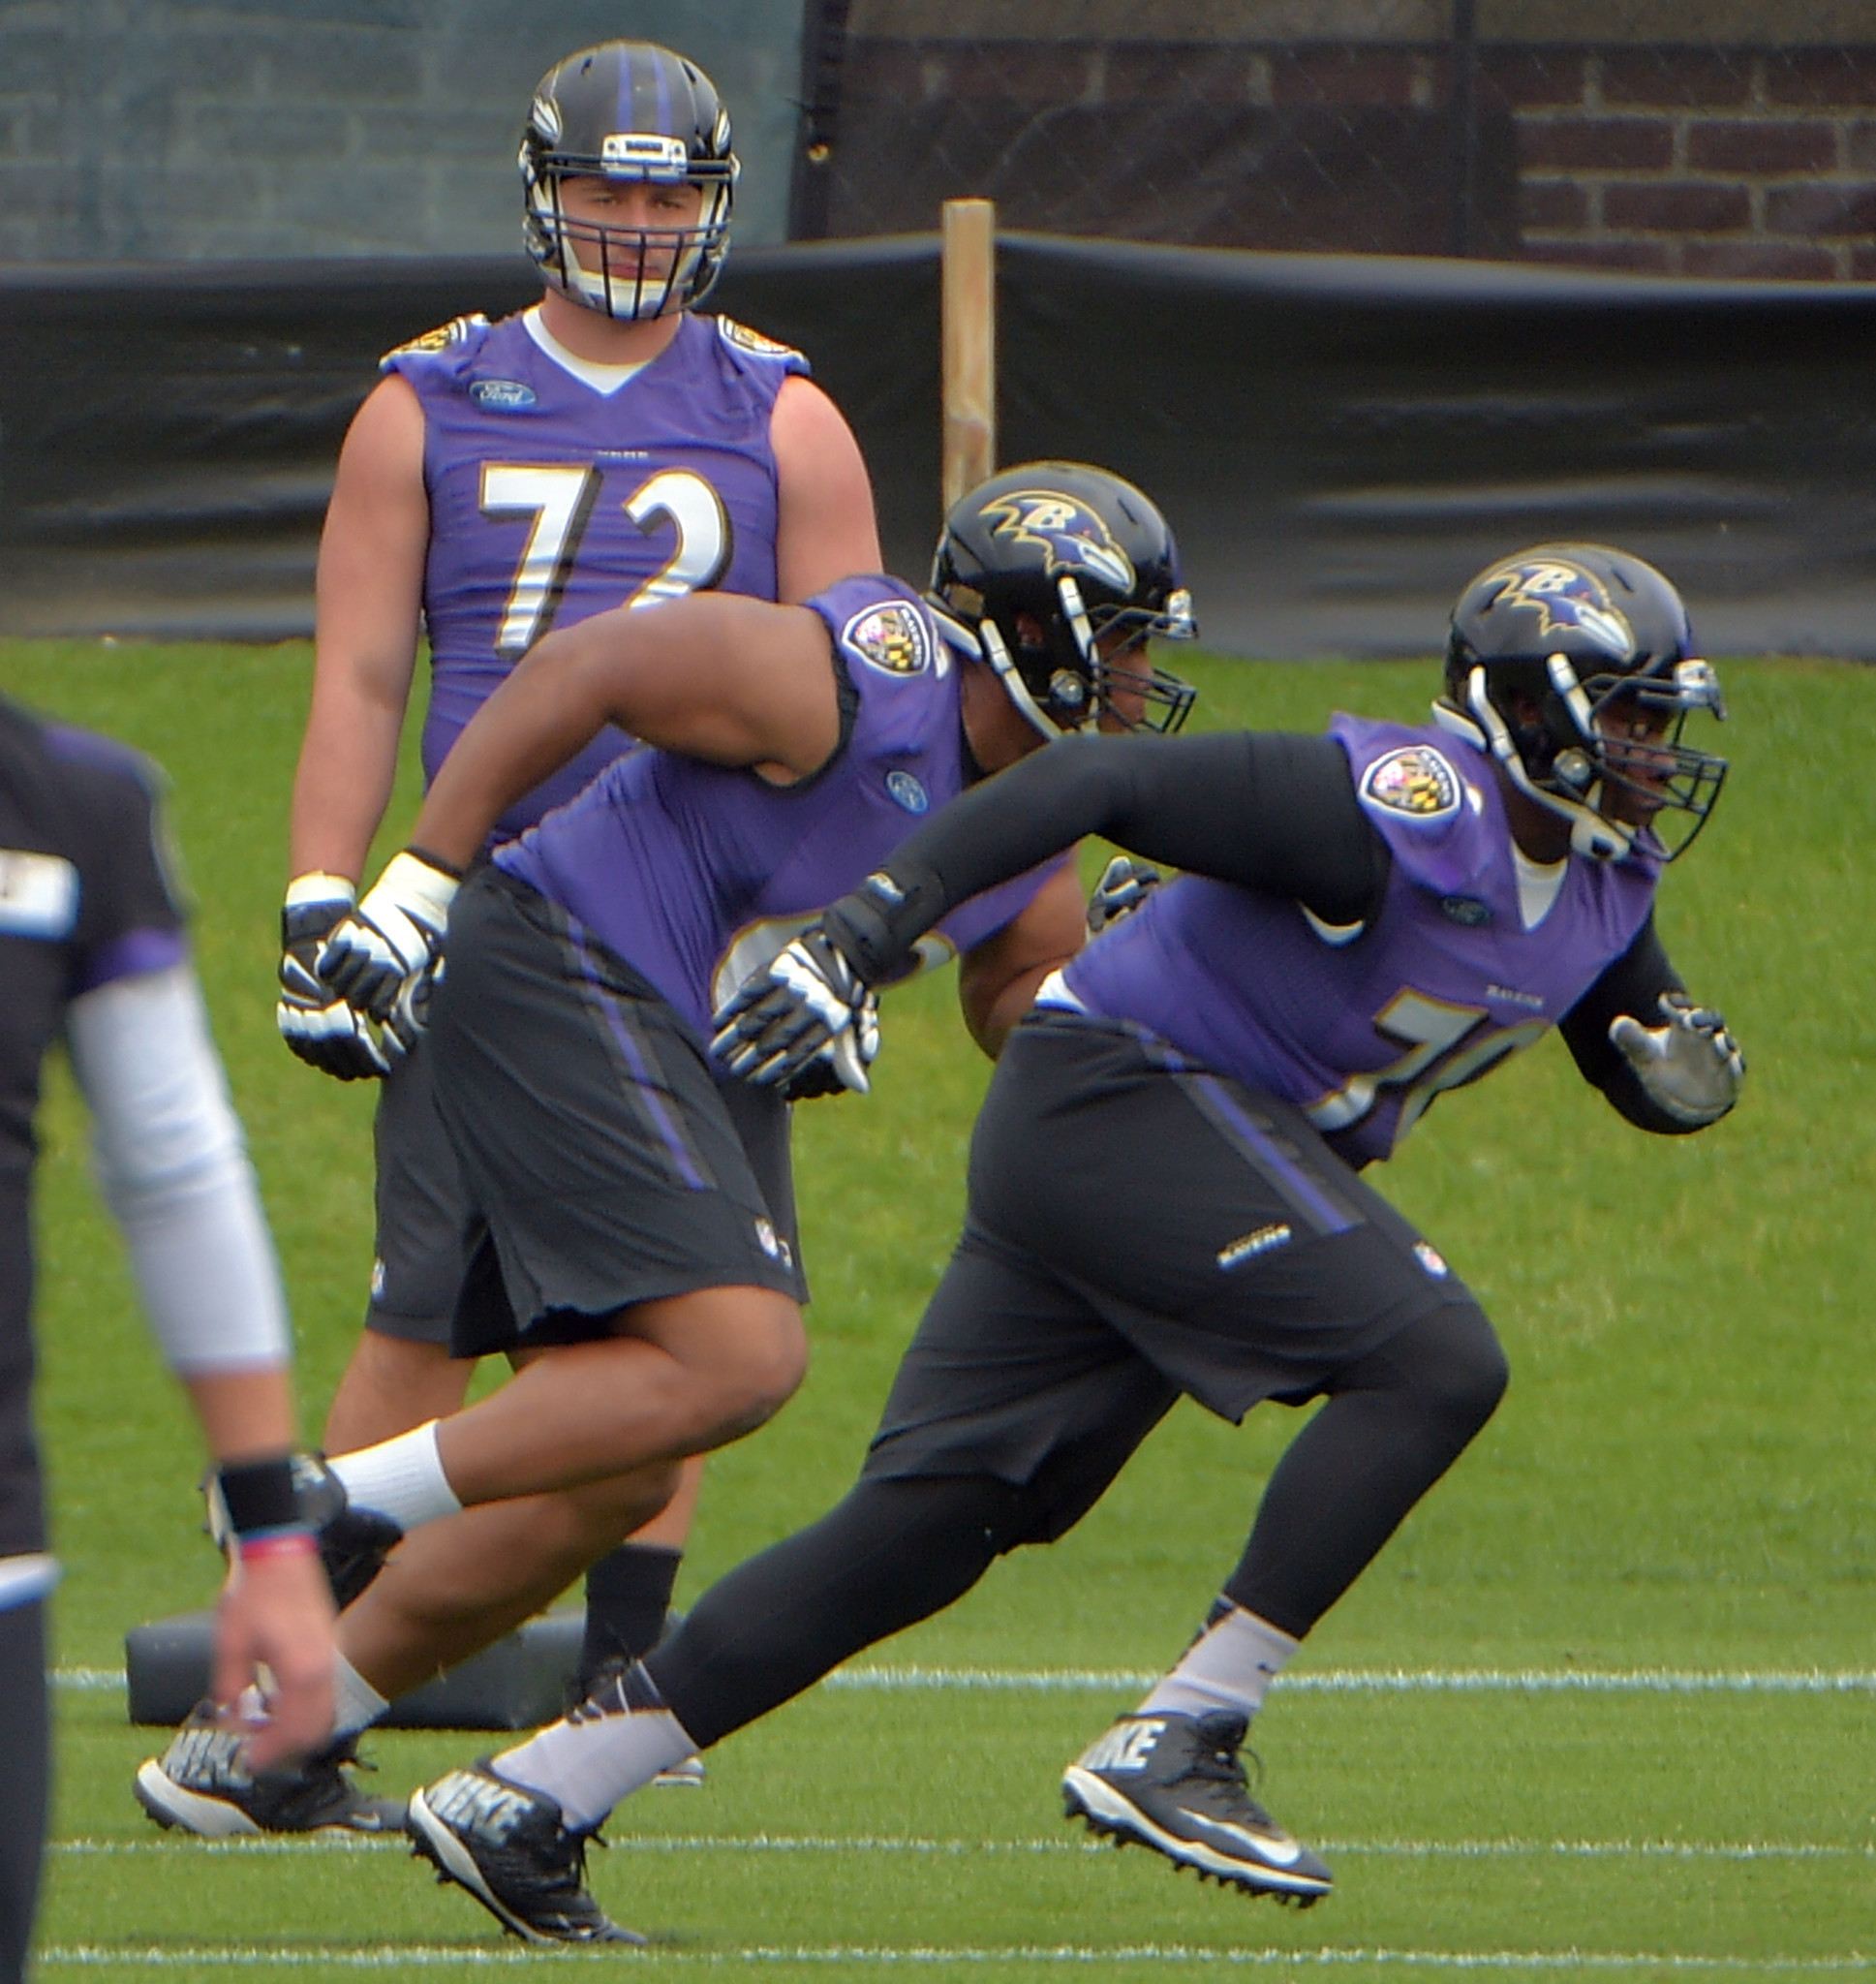 Bal-harbaugh-pleased-with-attendance-at-first-ravens-open-practice-20170525